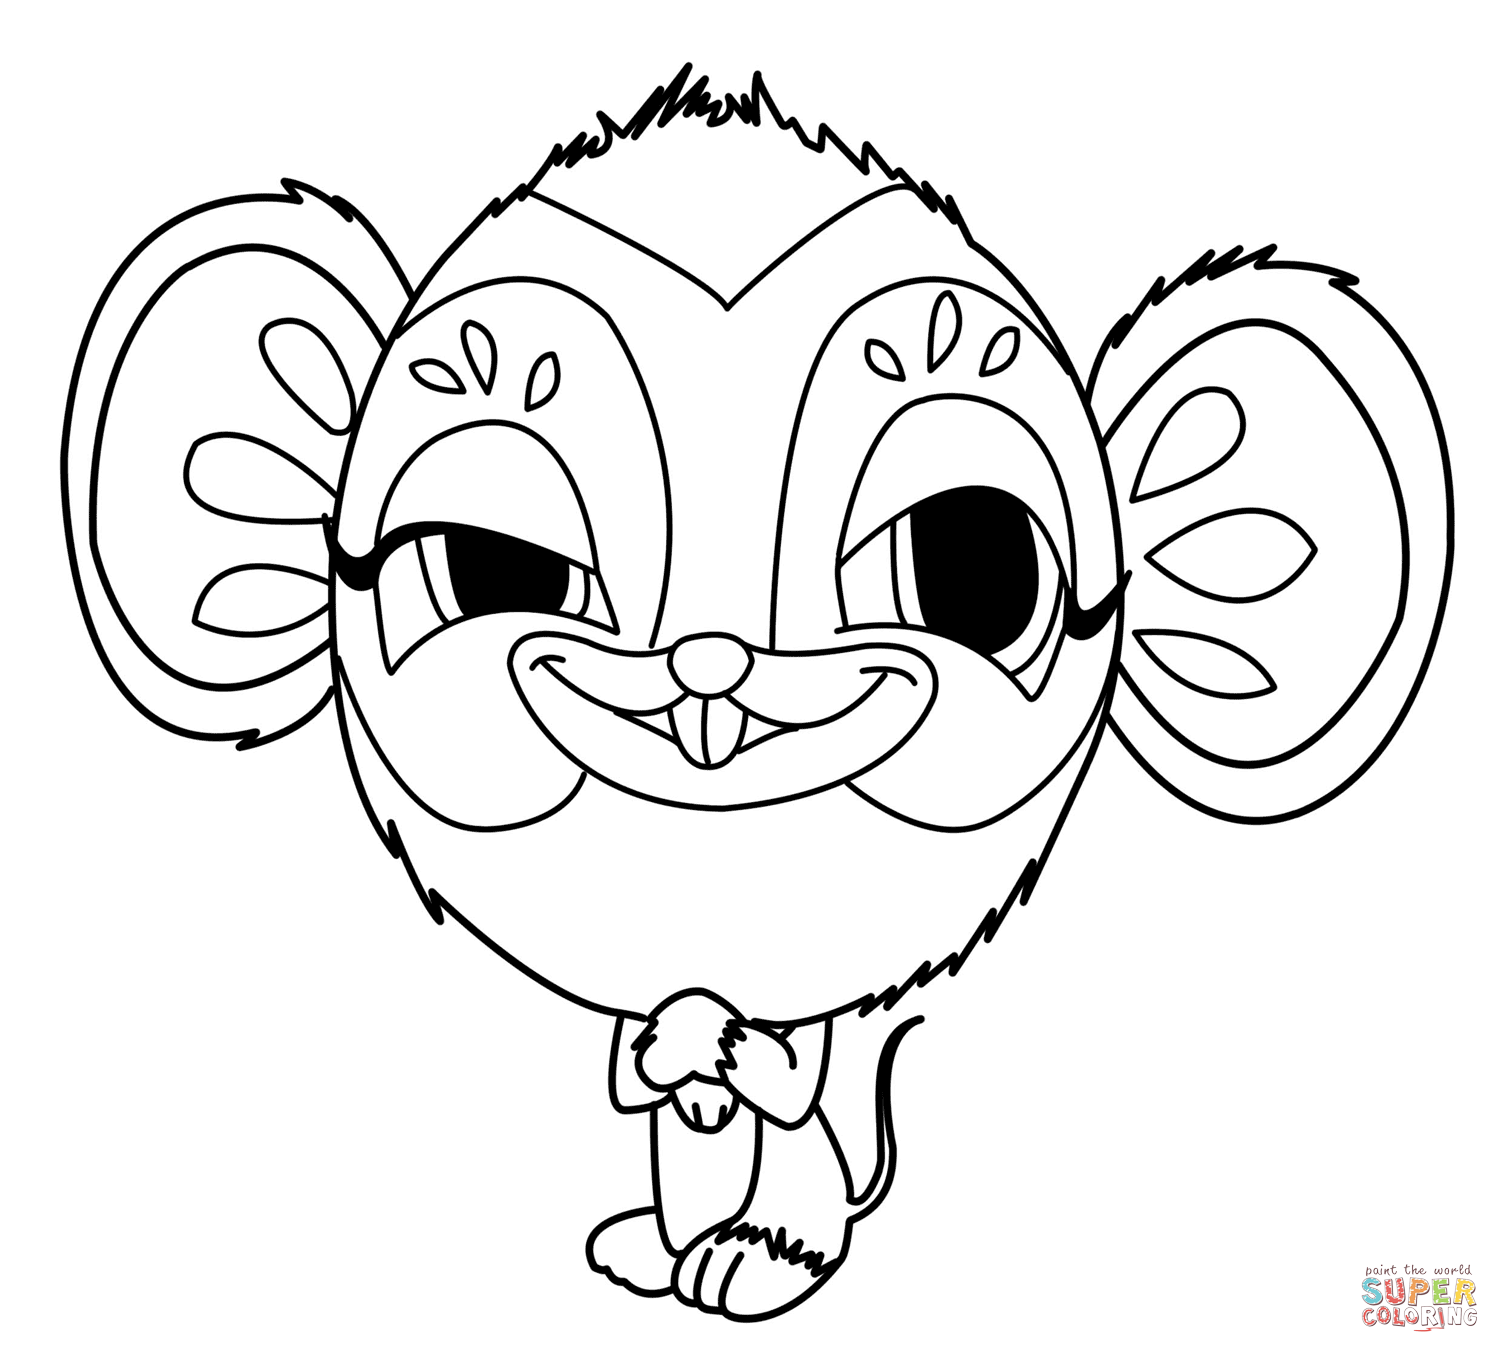 mouse coloring page zooble mouse coloring page free printable coloring pages page mouse coloring